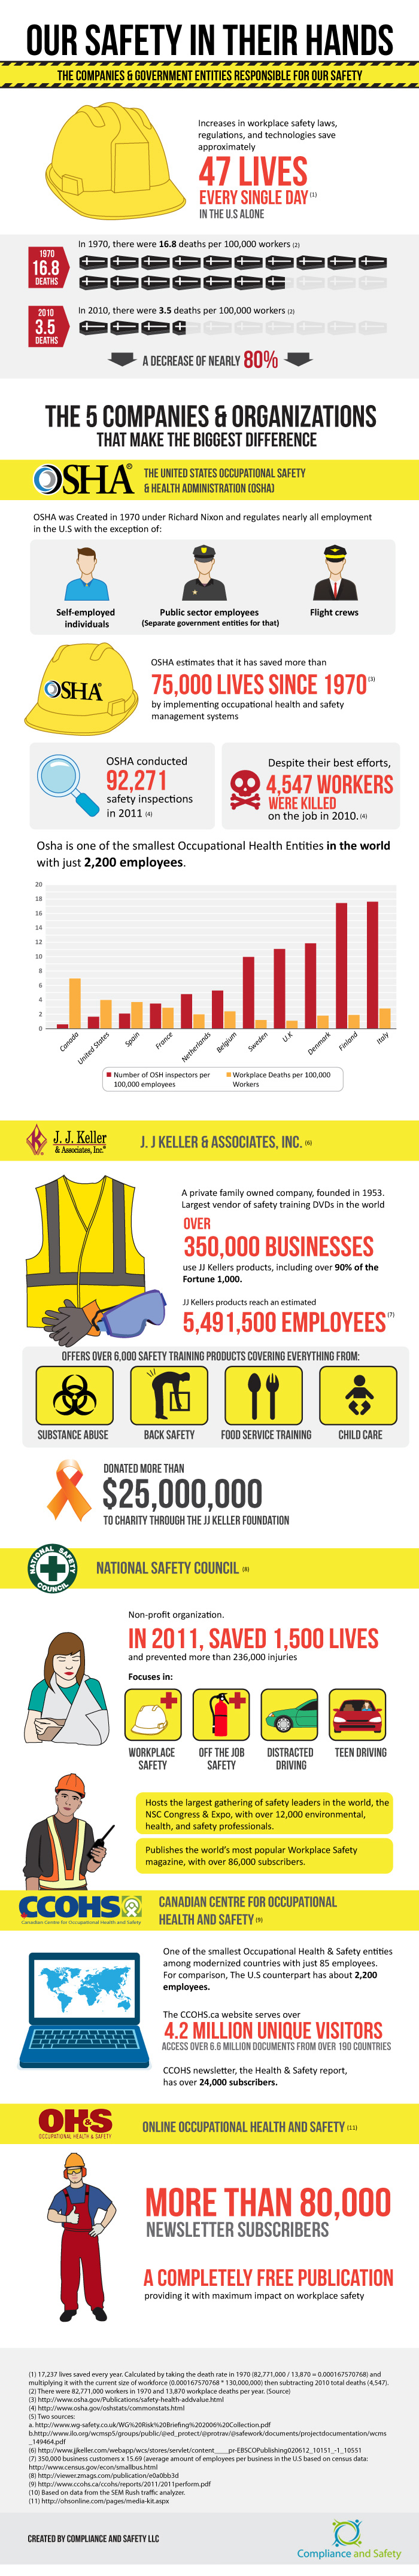 Effectiveness of OSHA in Reducing Workplace Fatalities